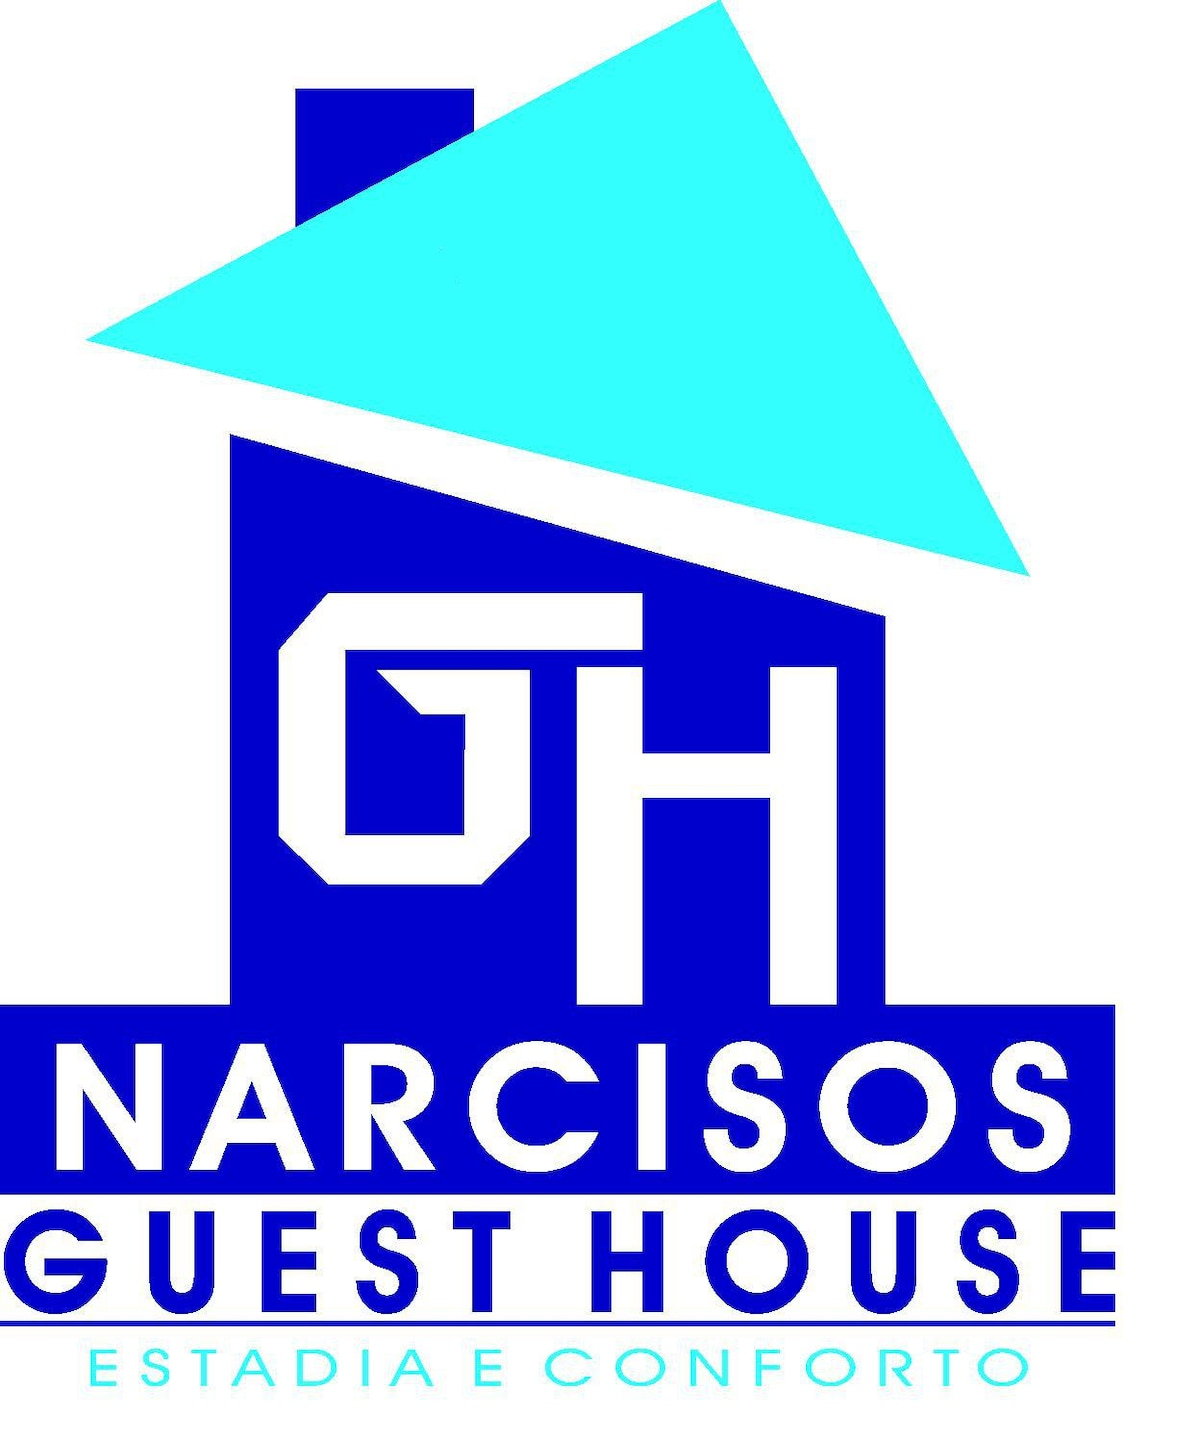 Narciso'S GUESTHOUSE from Luanda